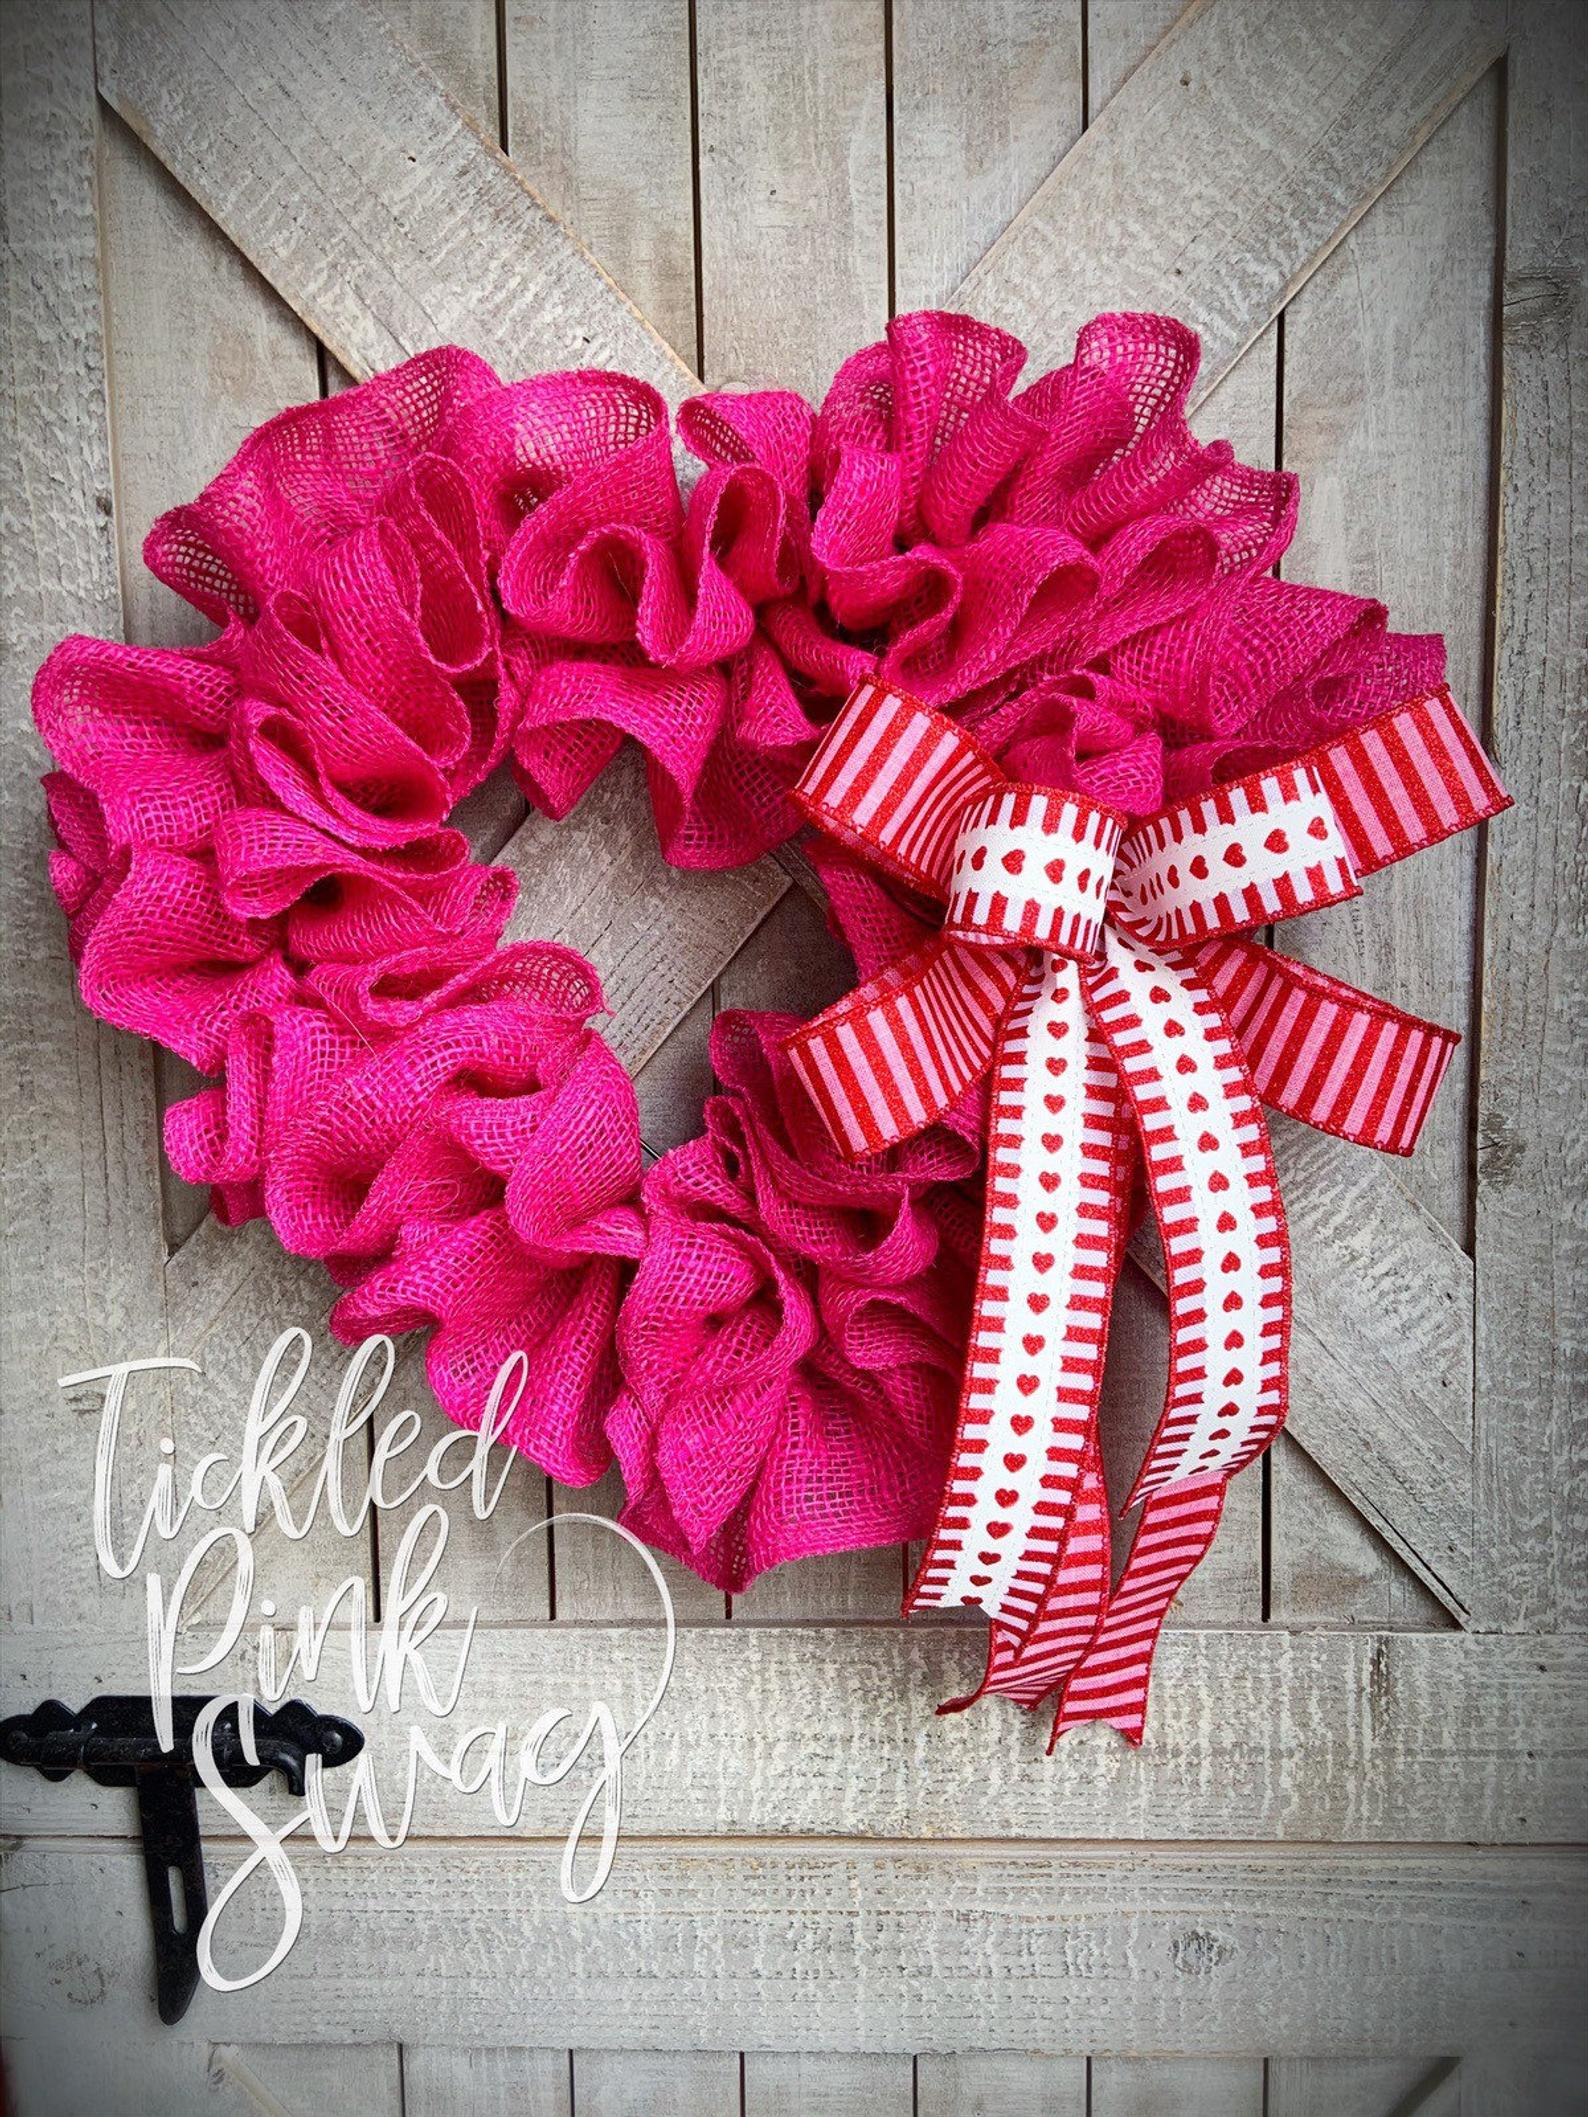 Pink heart-shaped wreath with burlap